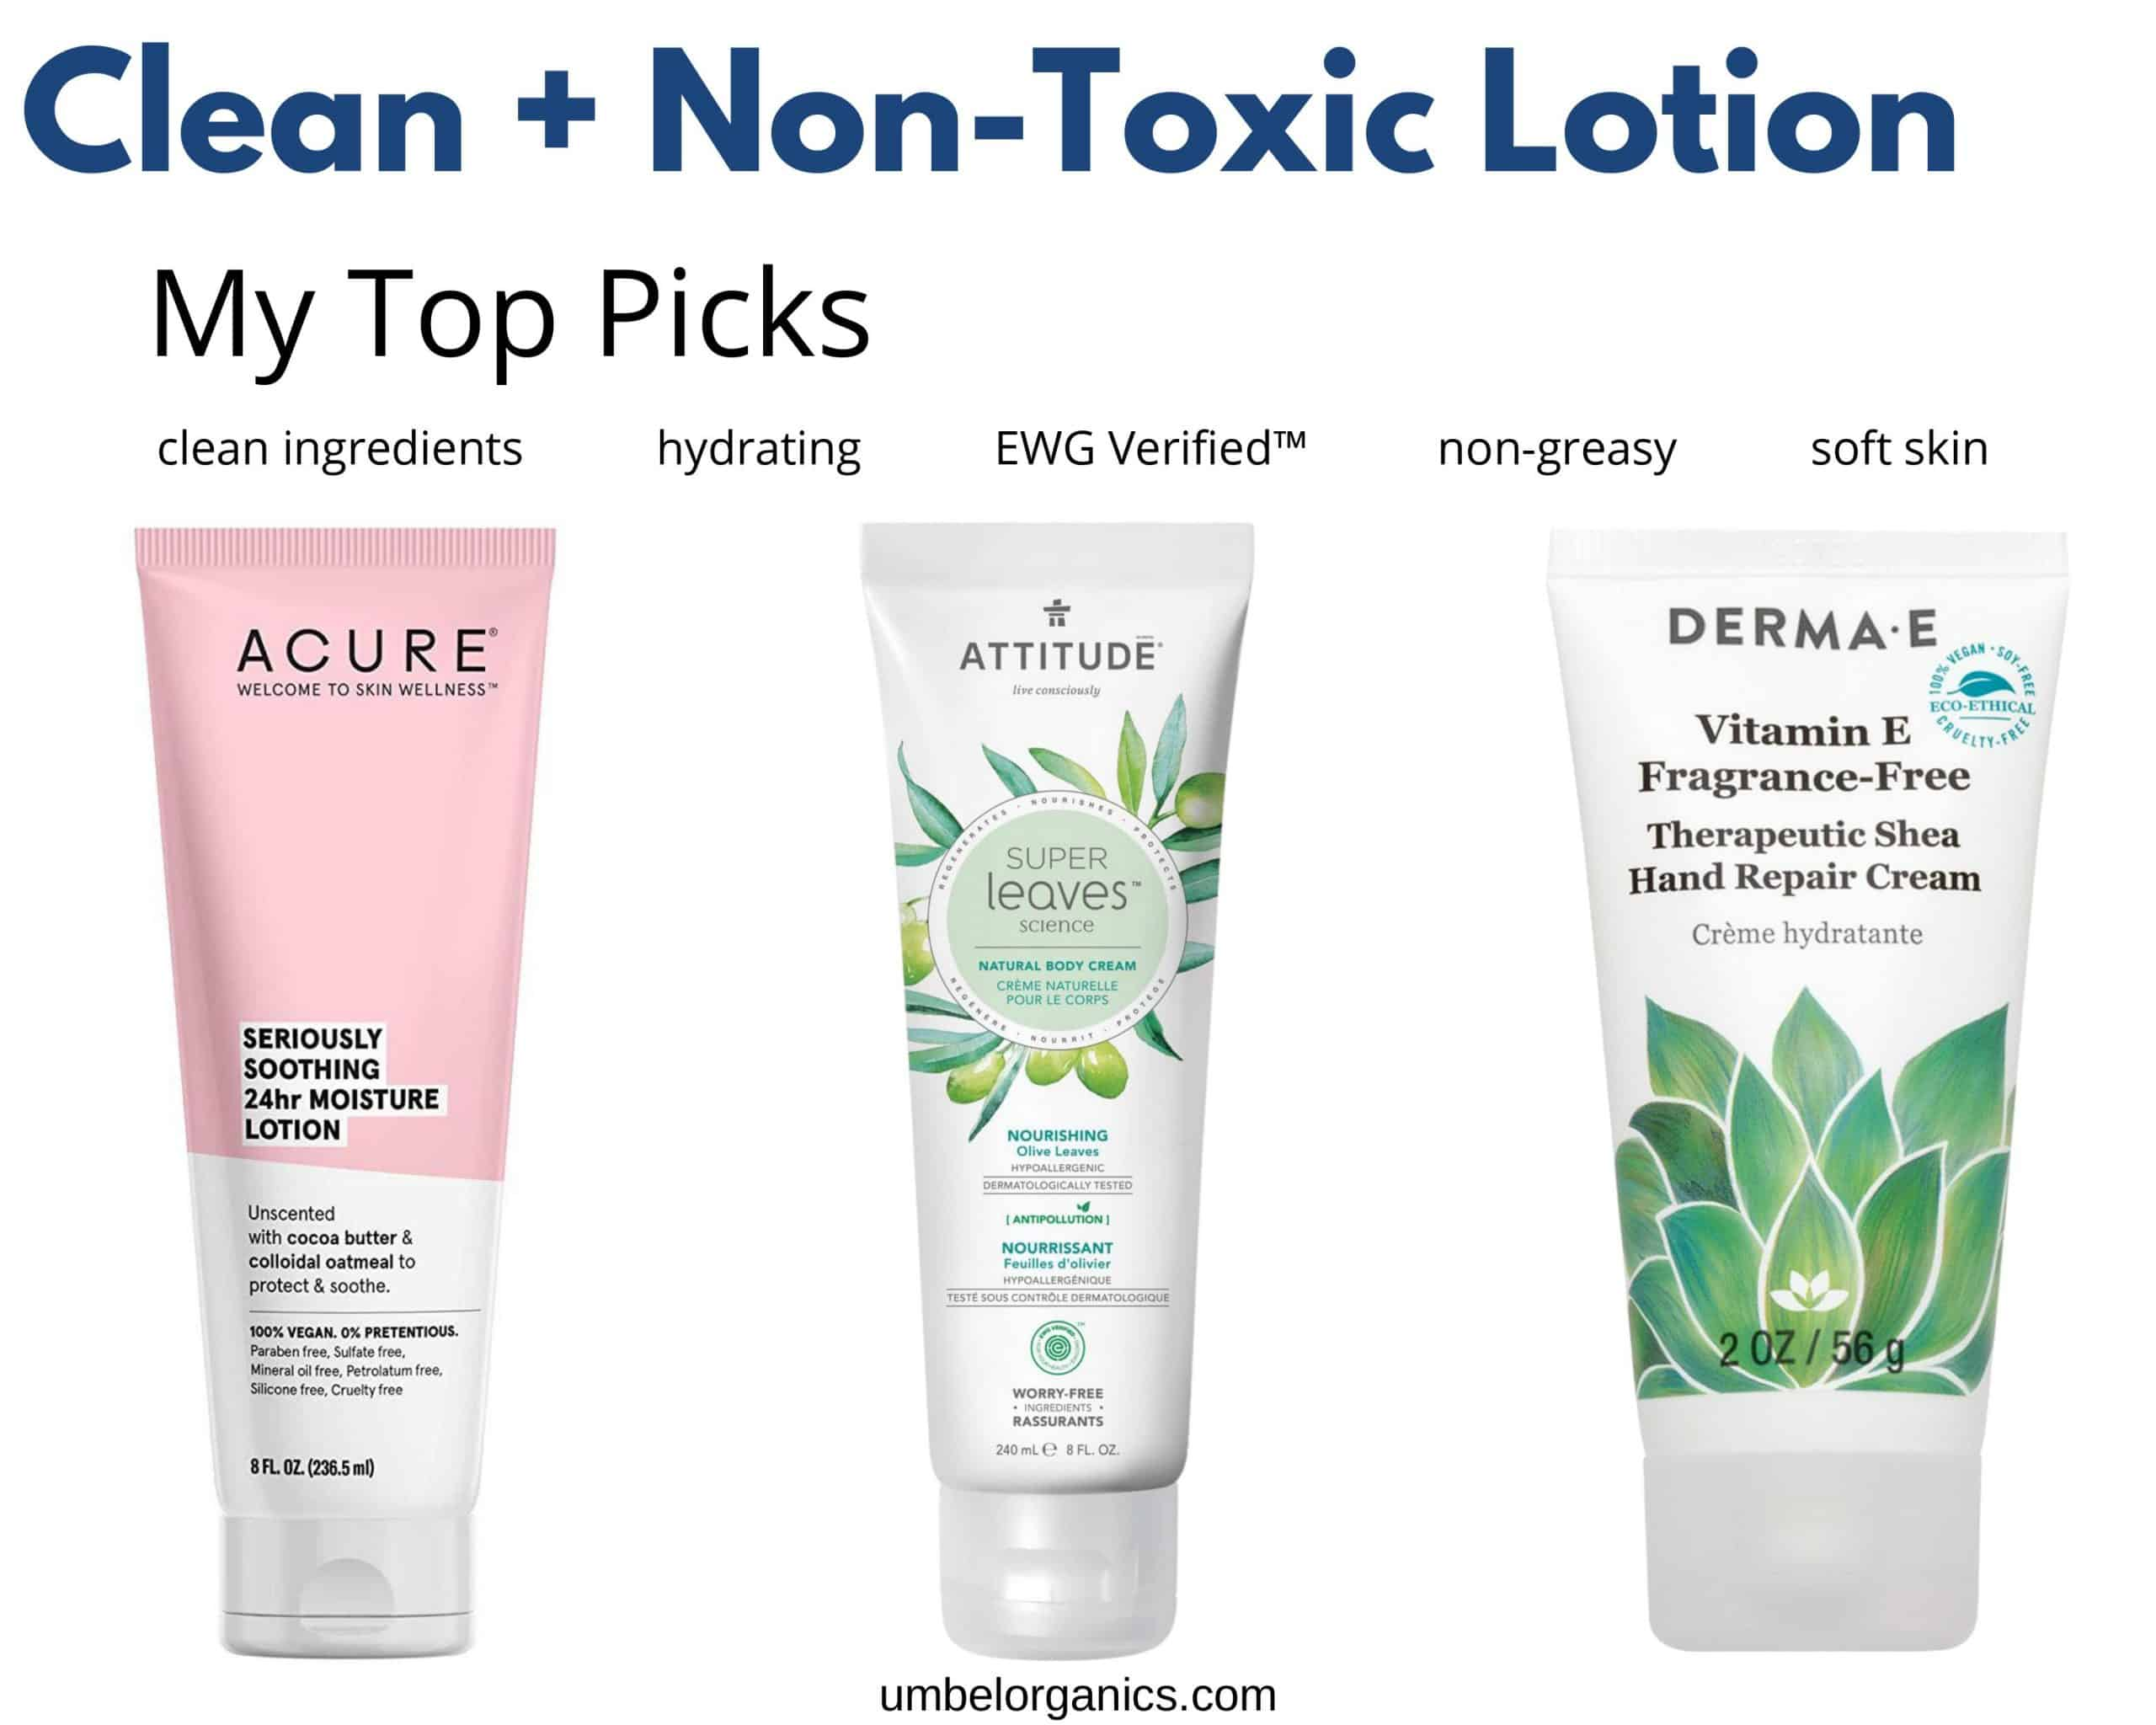 Clean lotion top picks: Acure, Attitude and Derma E